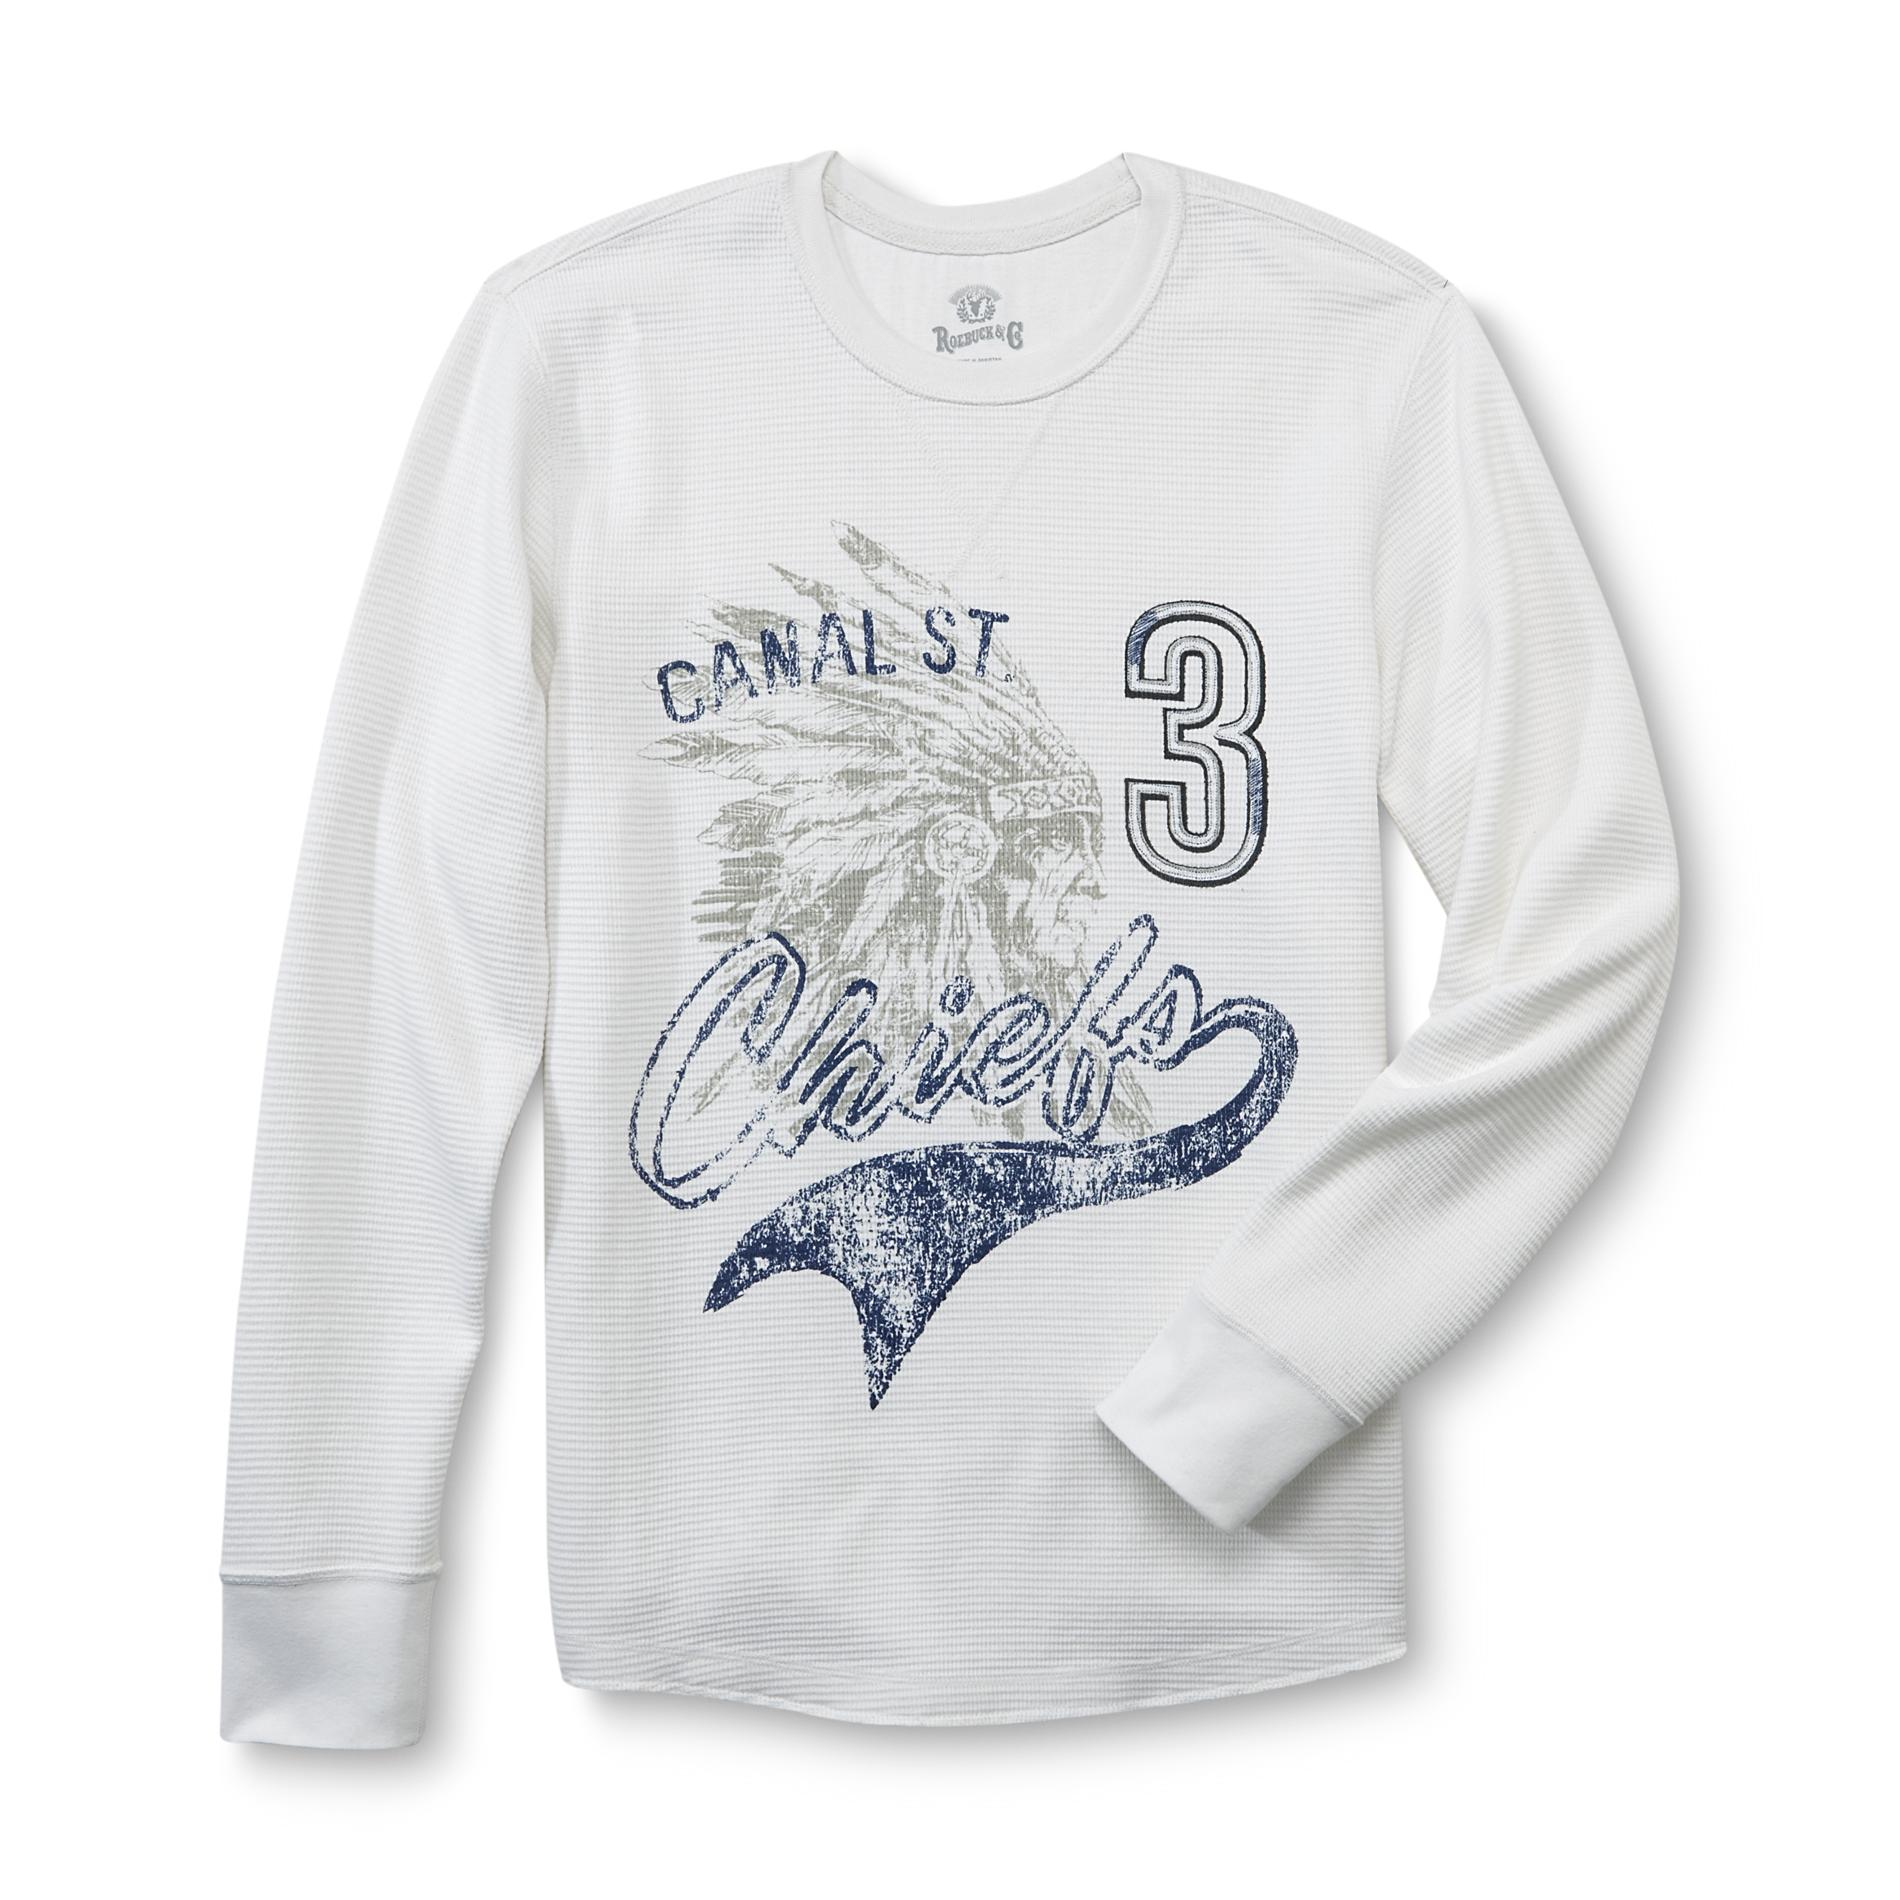 Roebuck & Co. Young Men's Thermal T-Shirt - Canal St. Chiefs